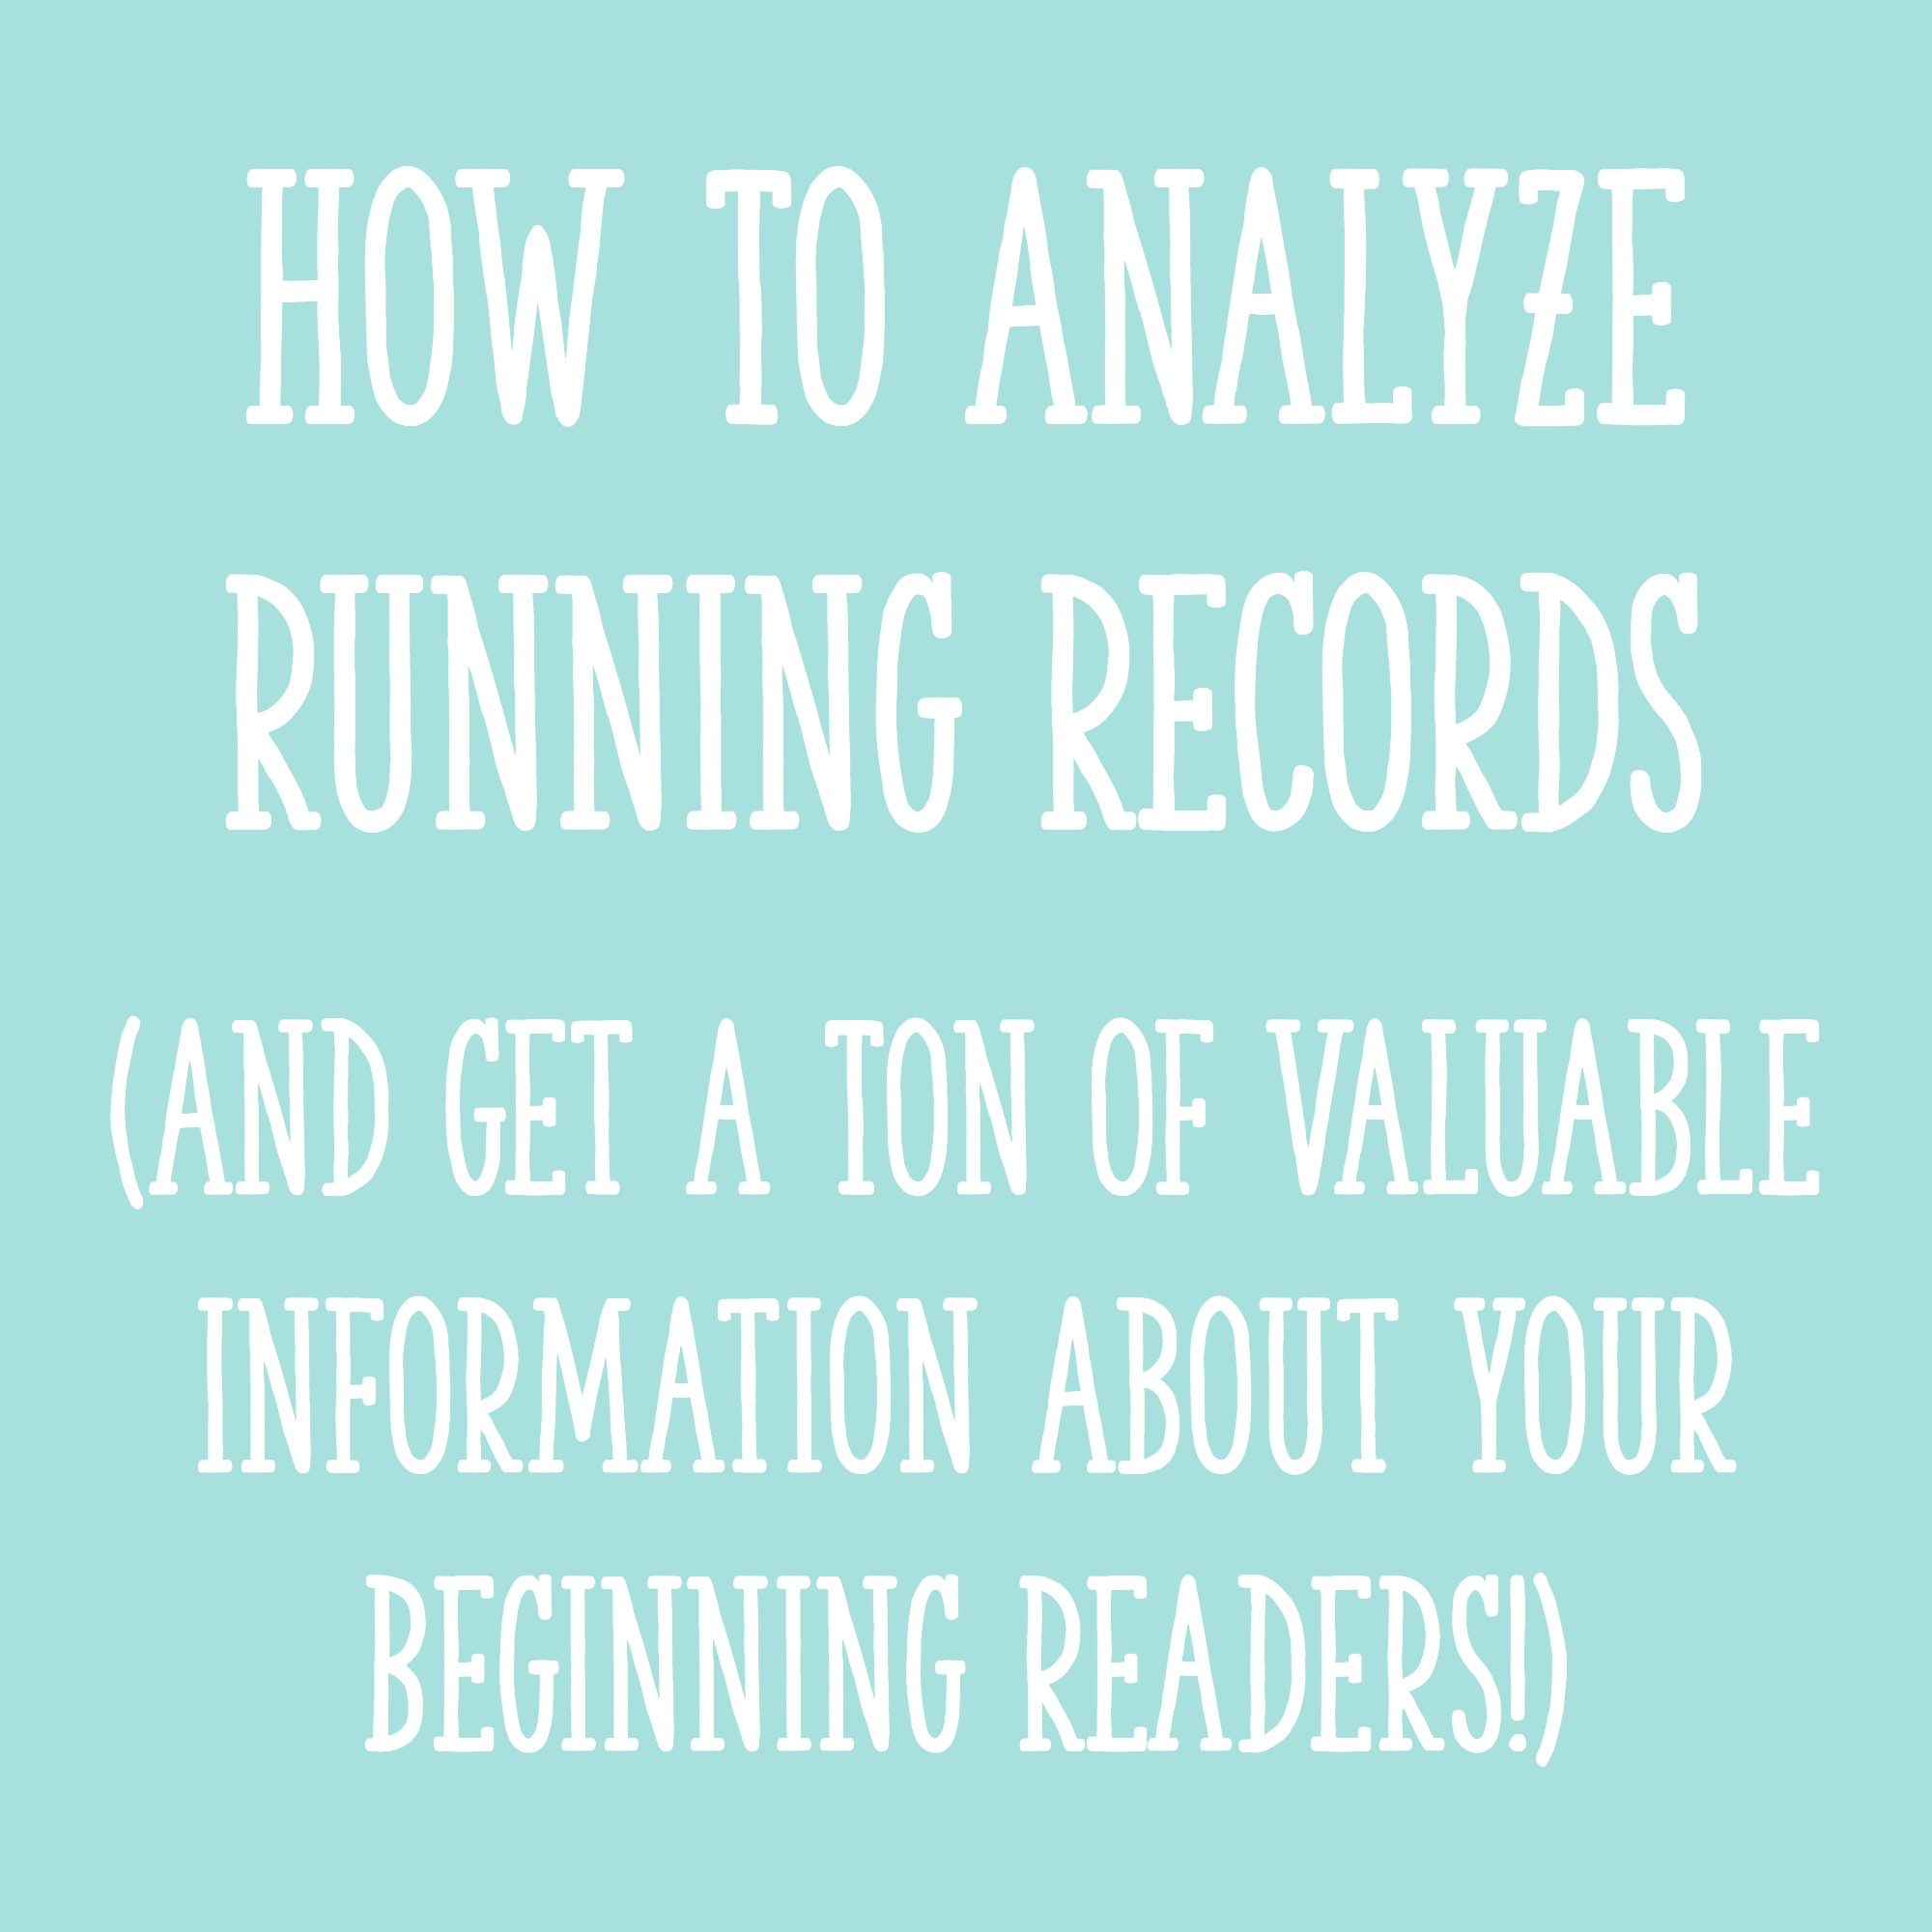 How To Analyze Running Records (And Get a Ton of Valuable ...